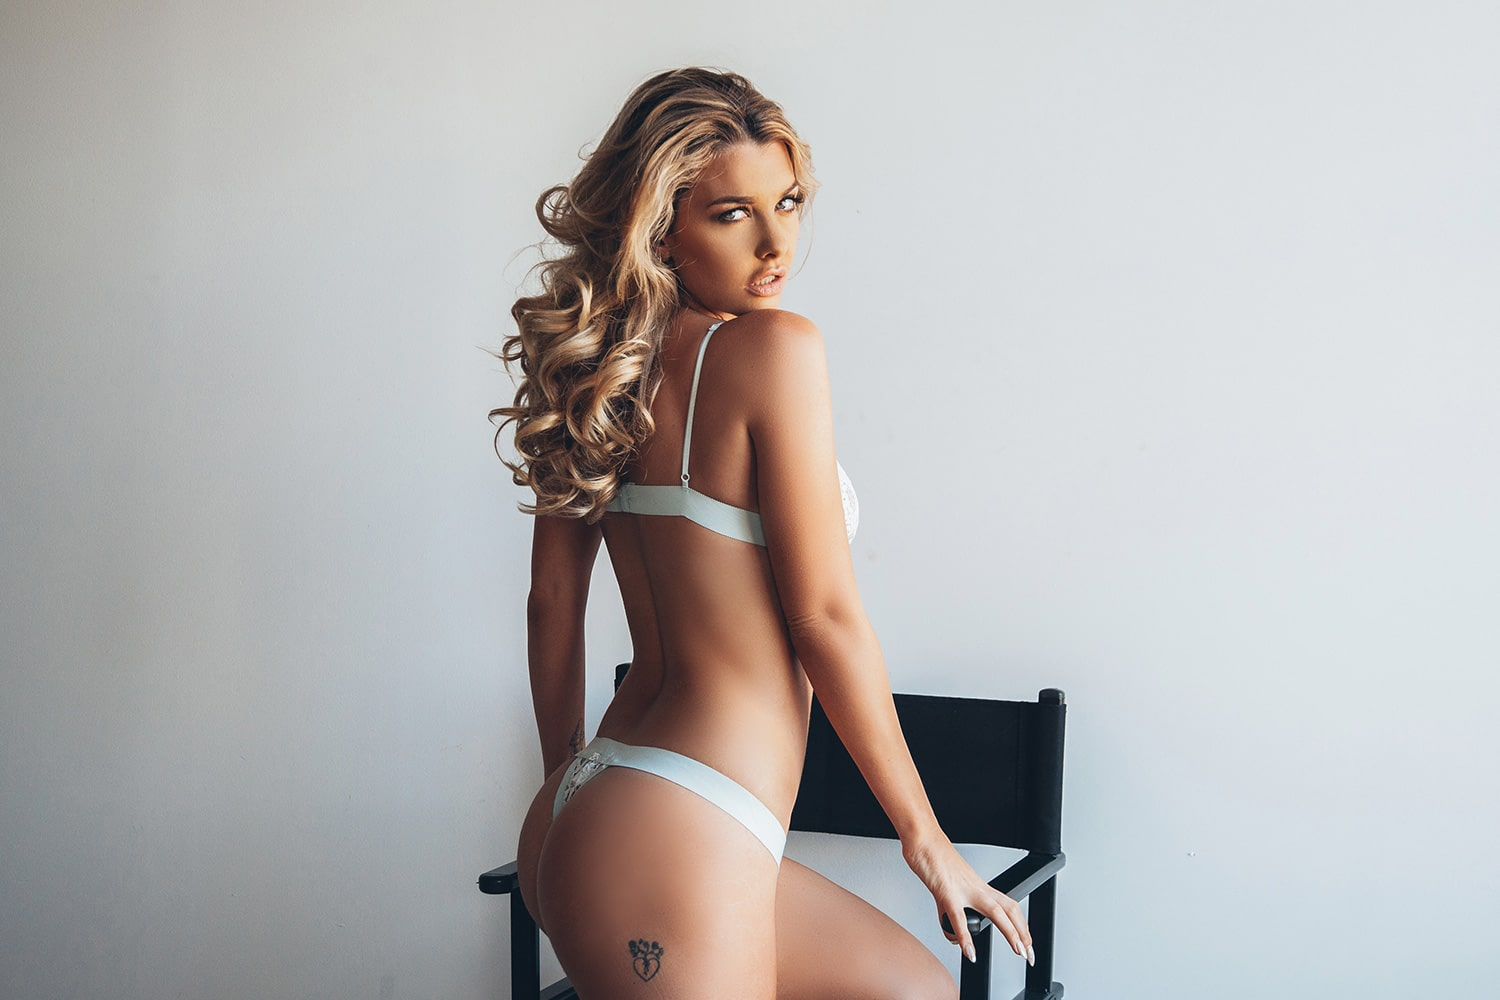 emily sears awesome butt